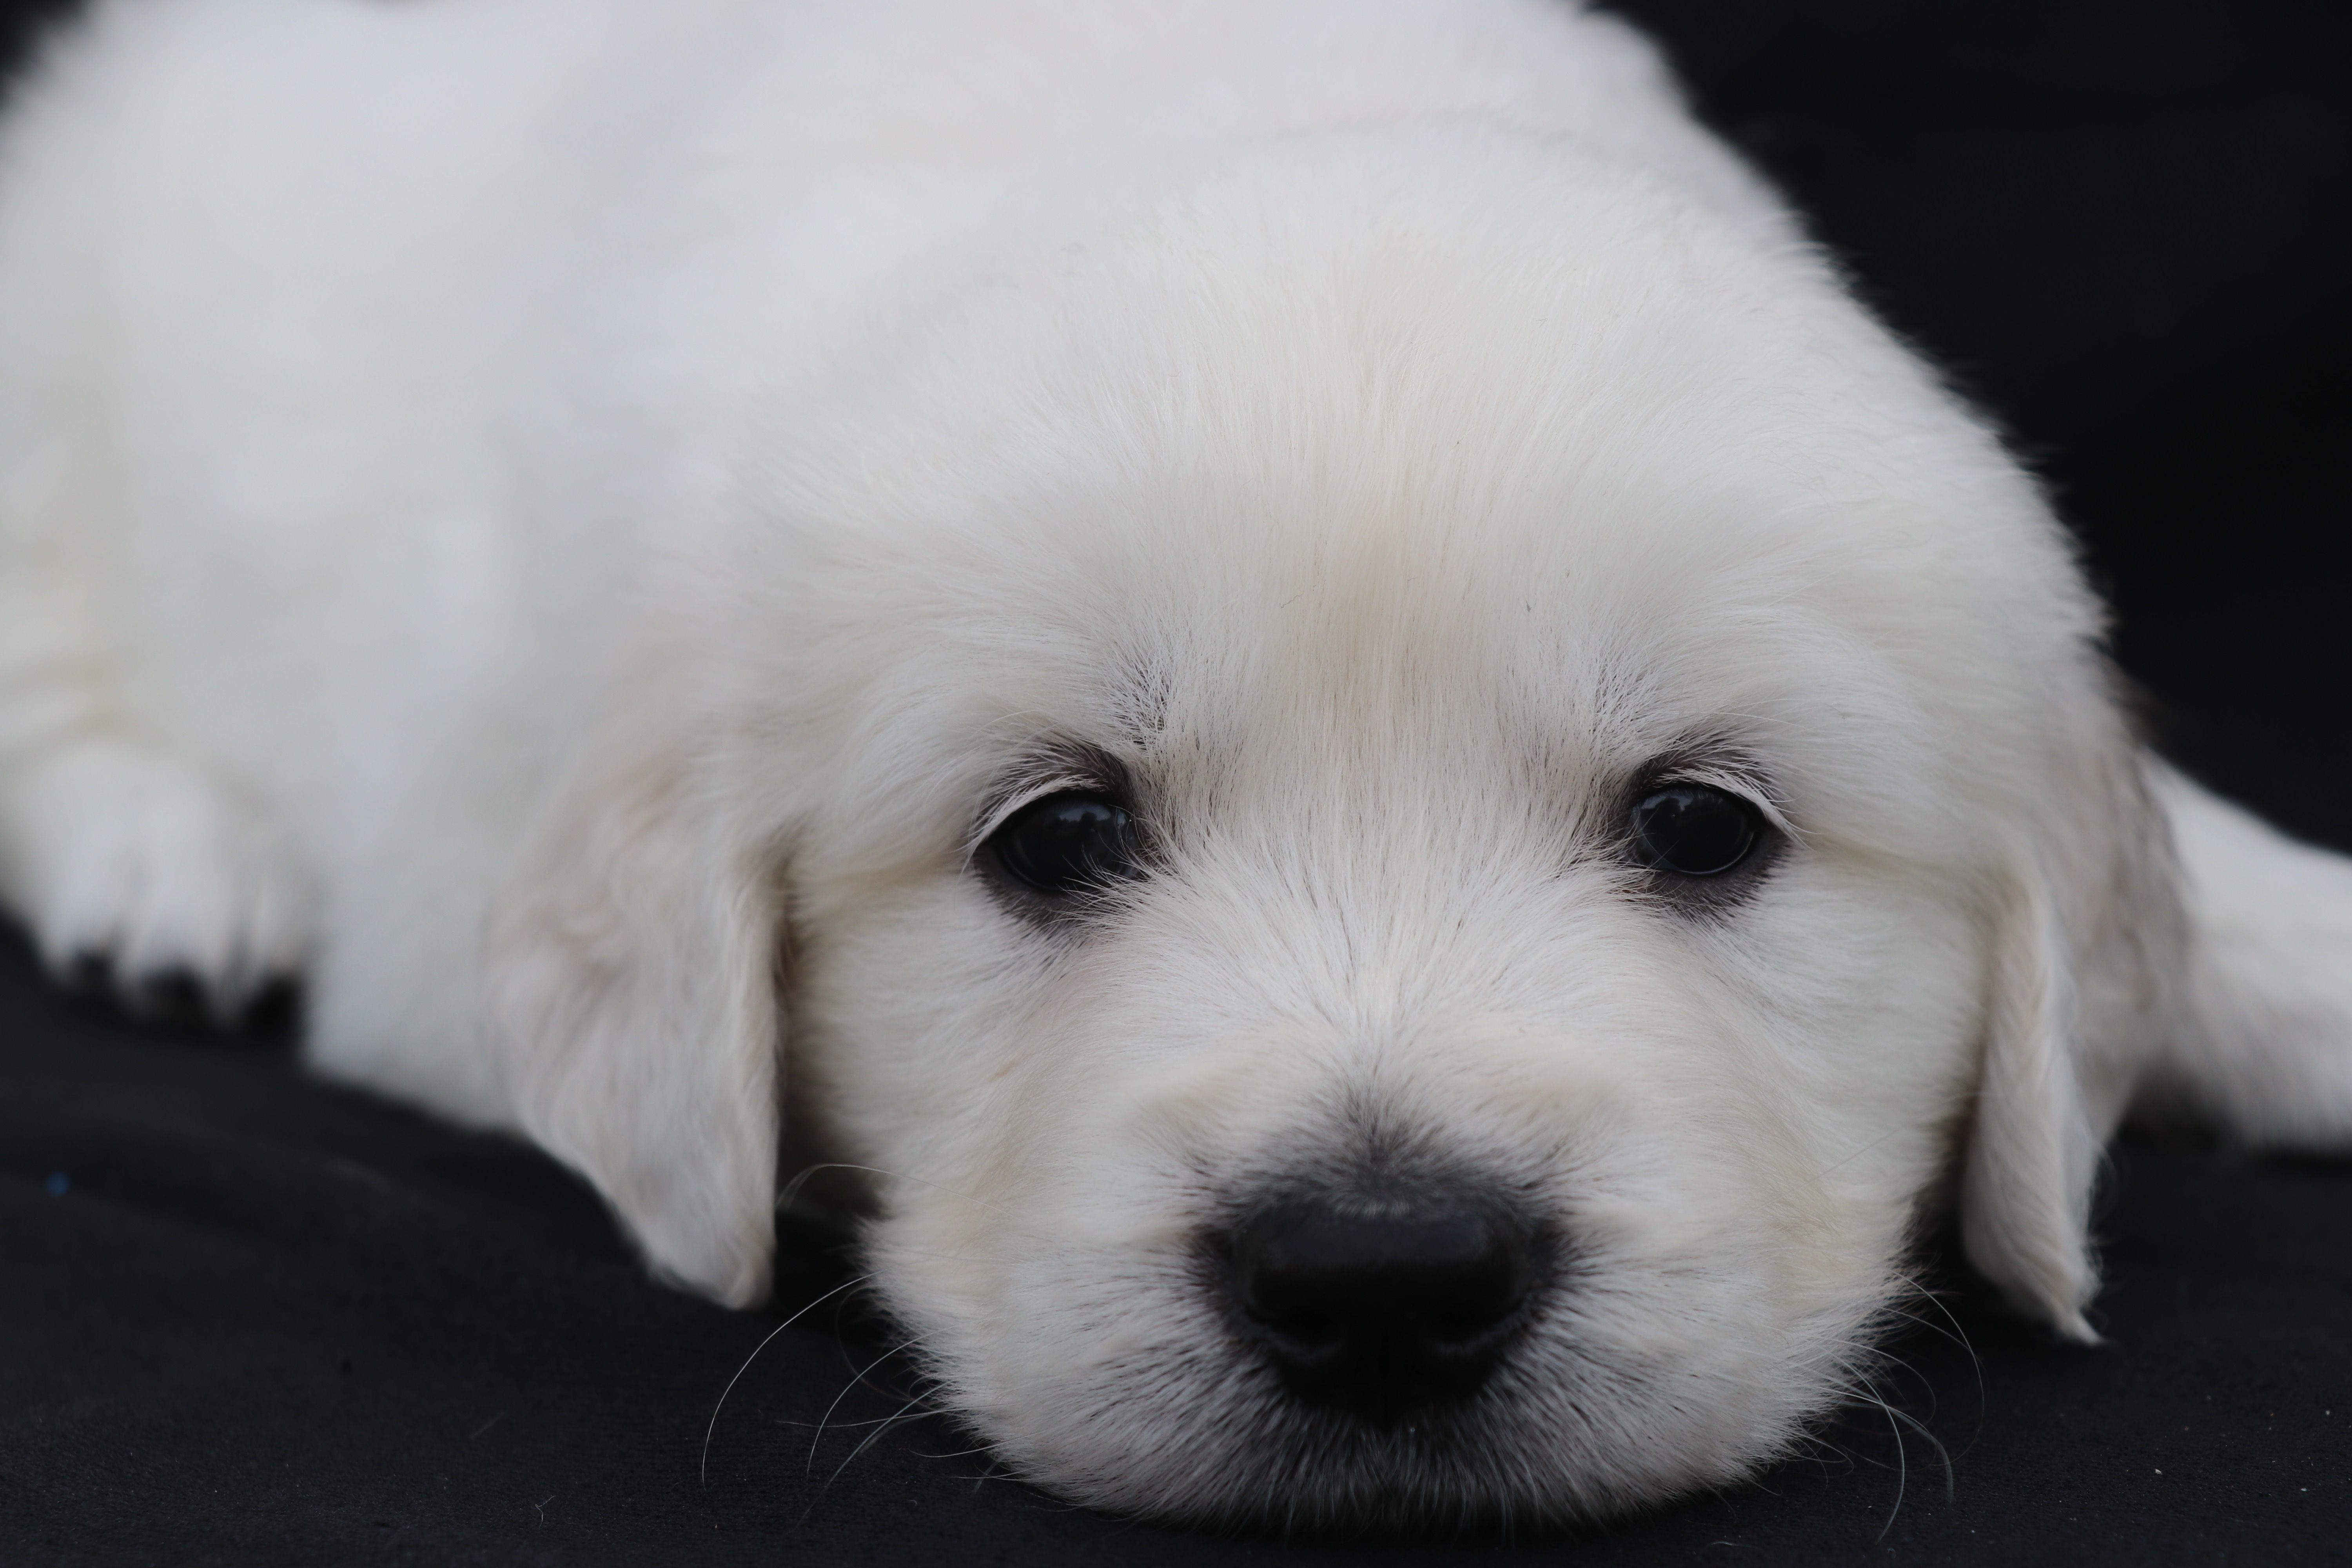 Boy Puppy English Golden Retriever Puppy For Sale North Manchester Indiana Vip Puppies English Golden Retriever Puppy Puppies Golden Retriever Puppy